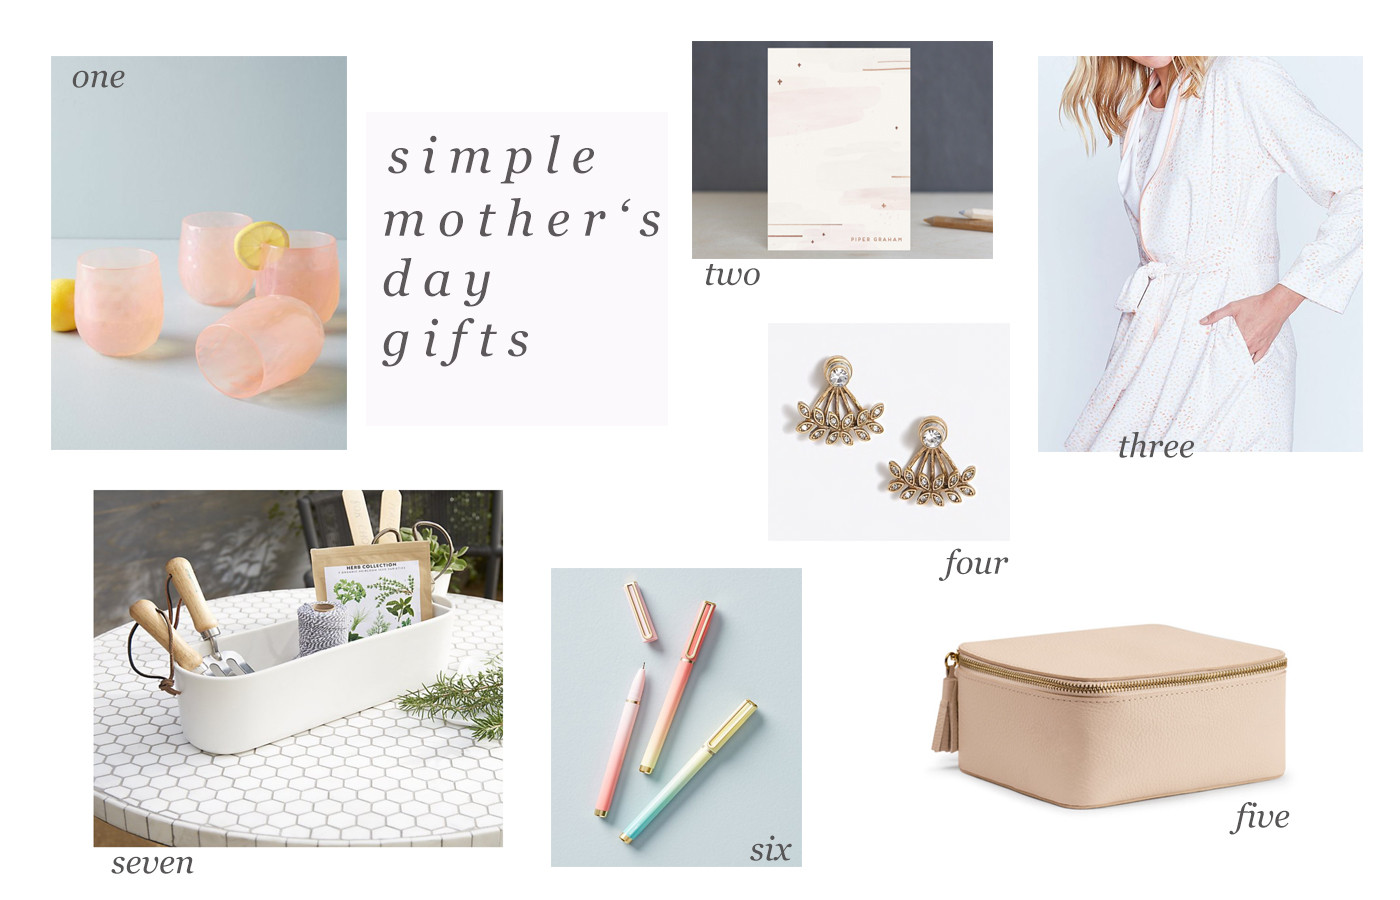 Simple Mother'S Day Gift Ideas  Simple Mother's Day Gift Ideas – The Small Things Blog